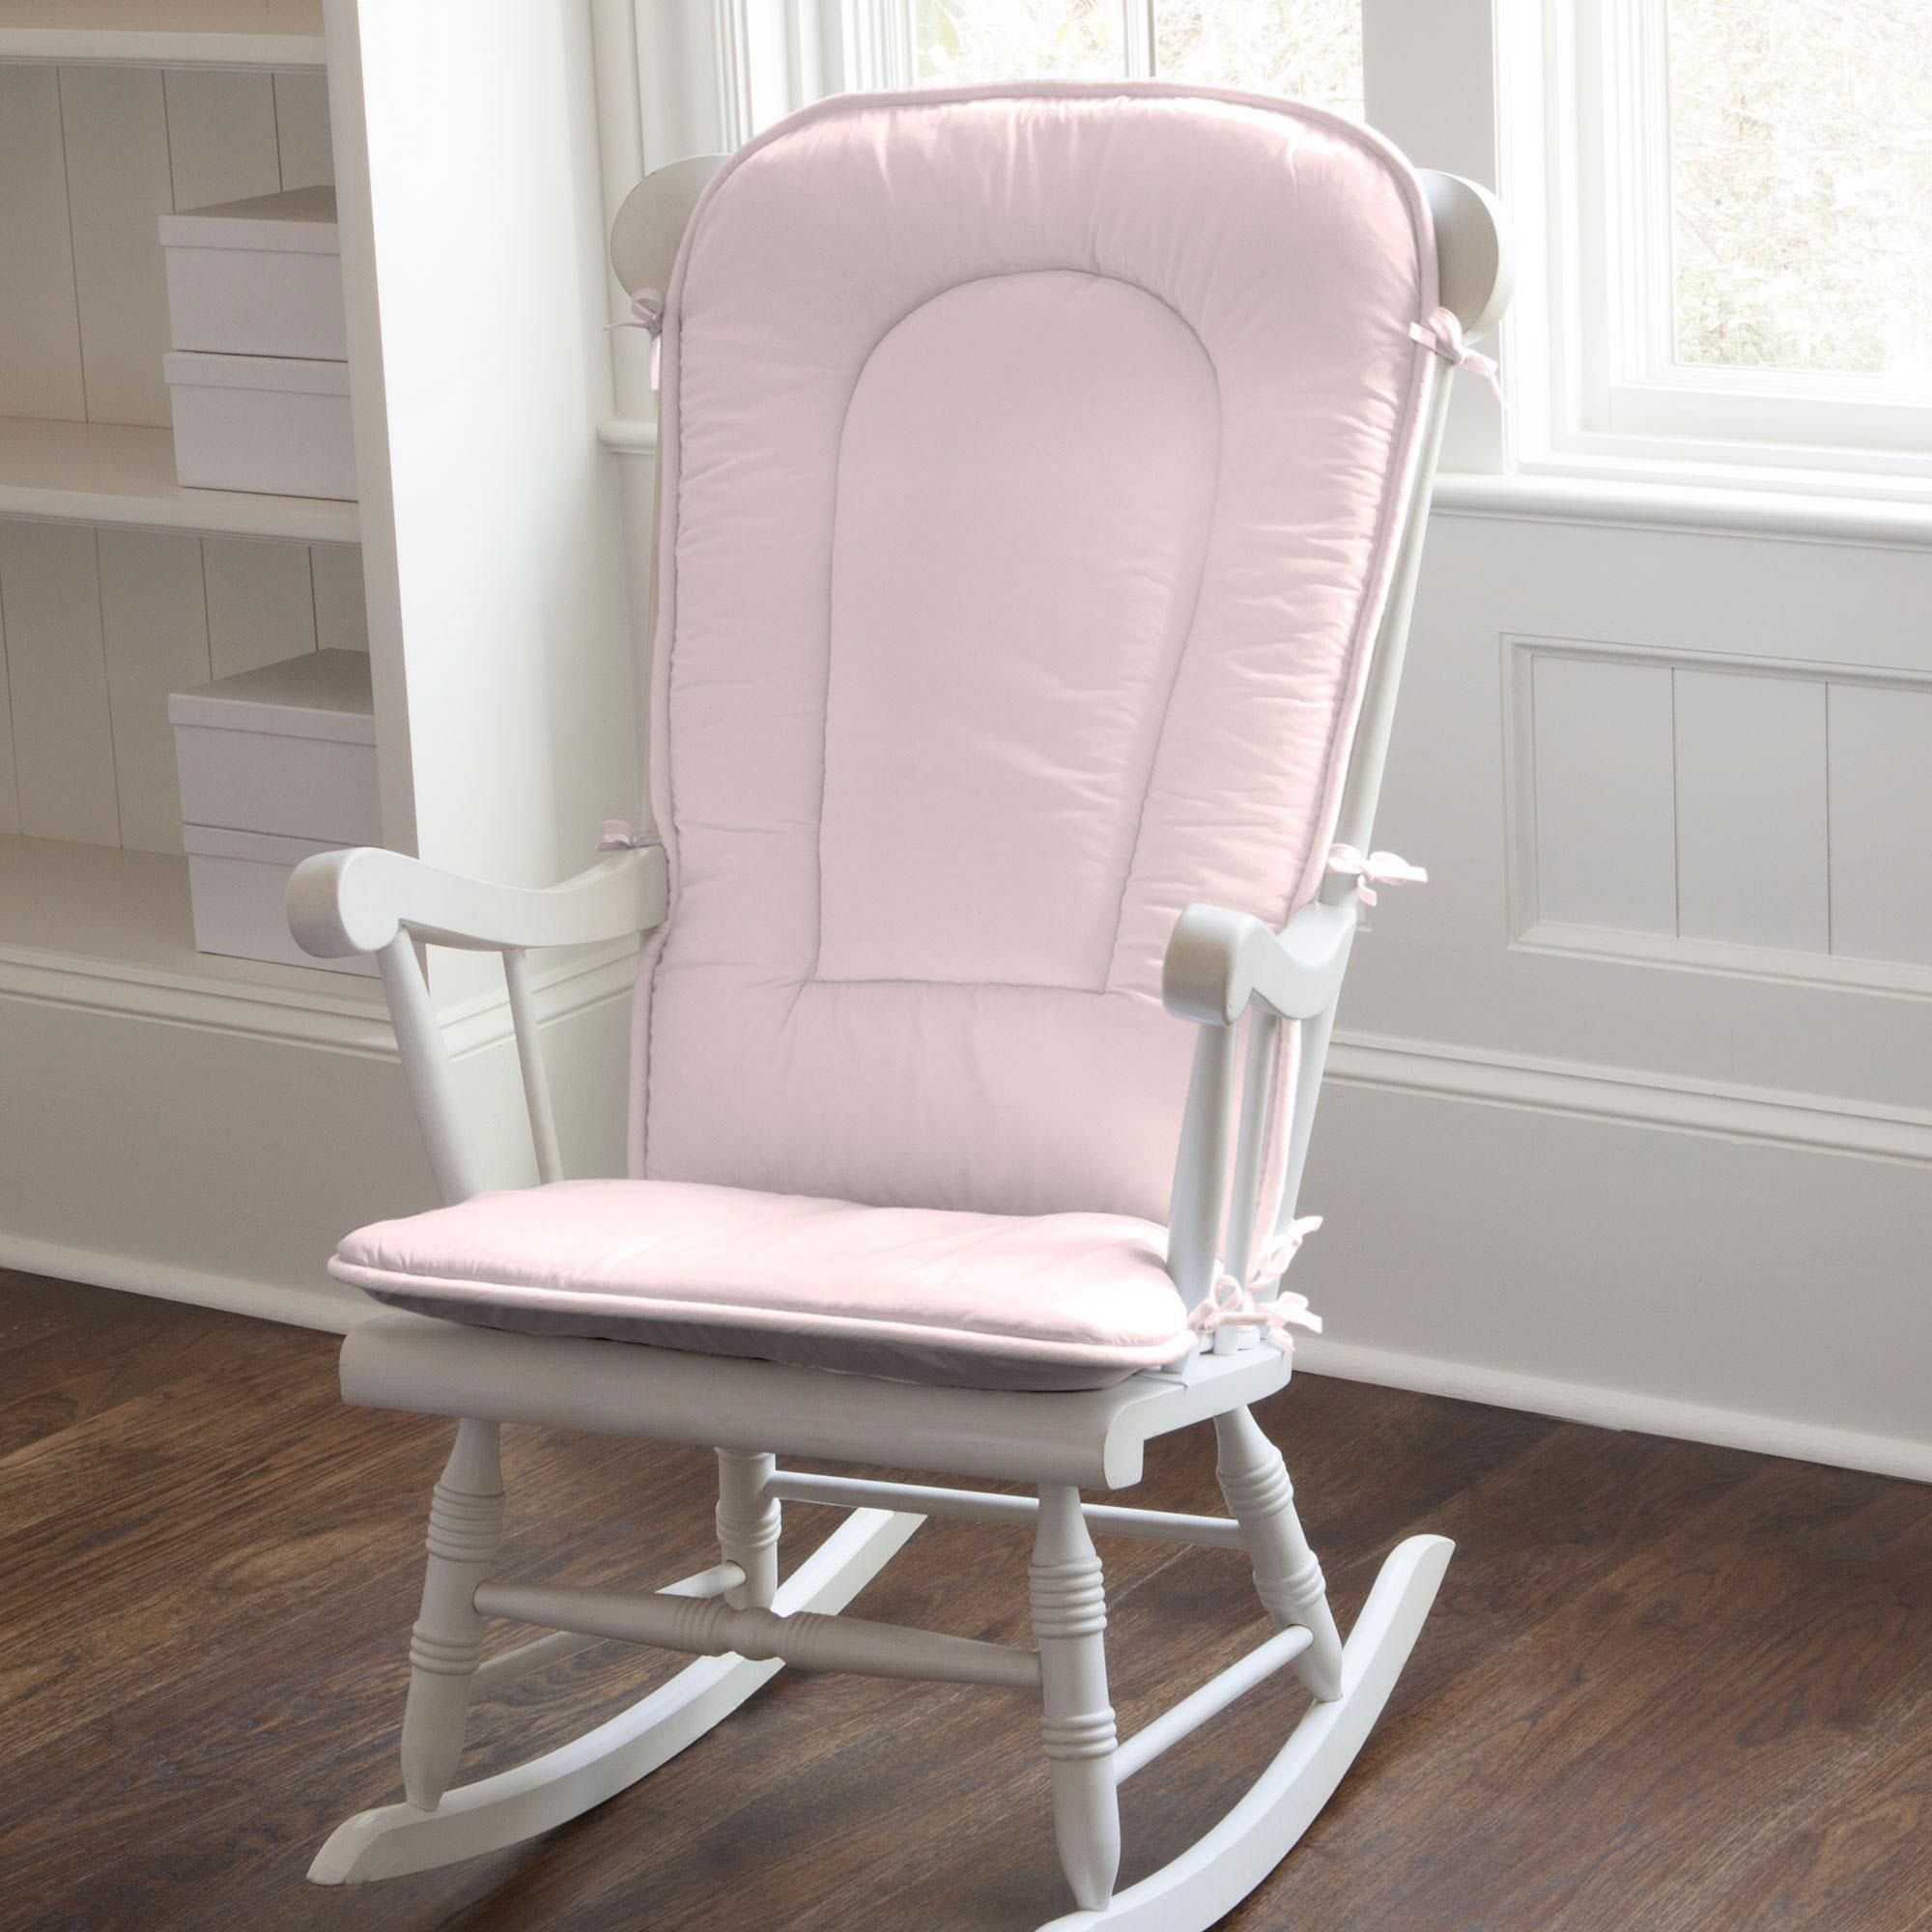 Superieur Solid Pink Rocking Chair Pad